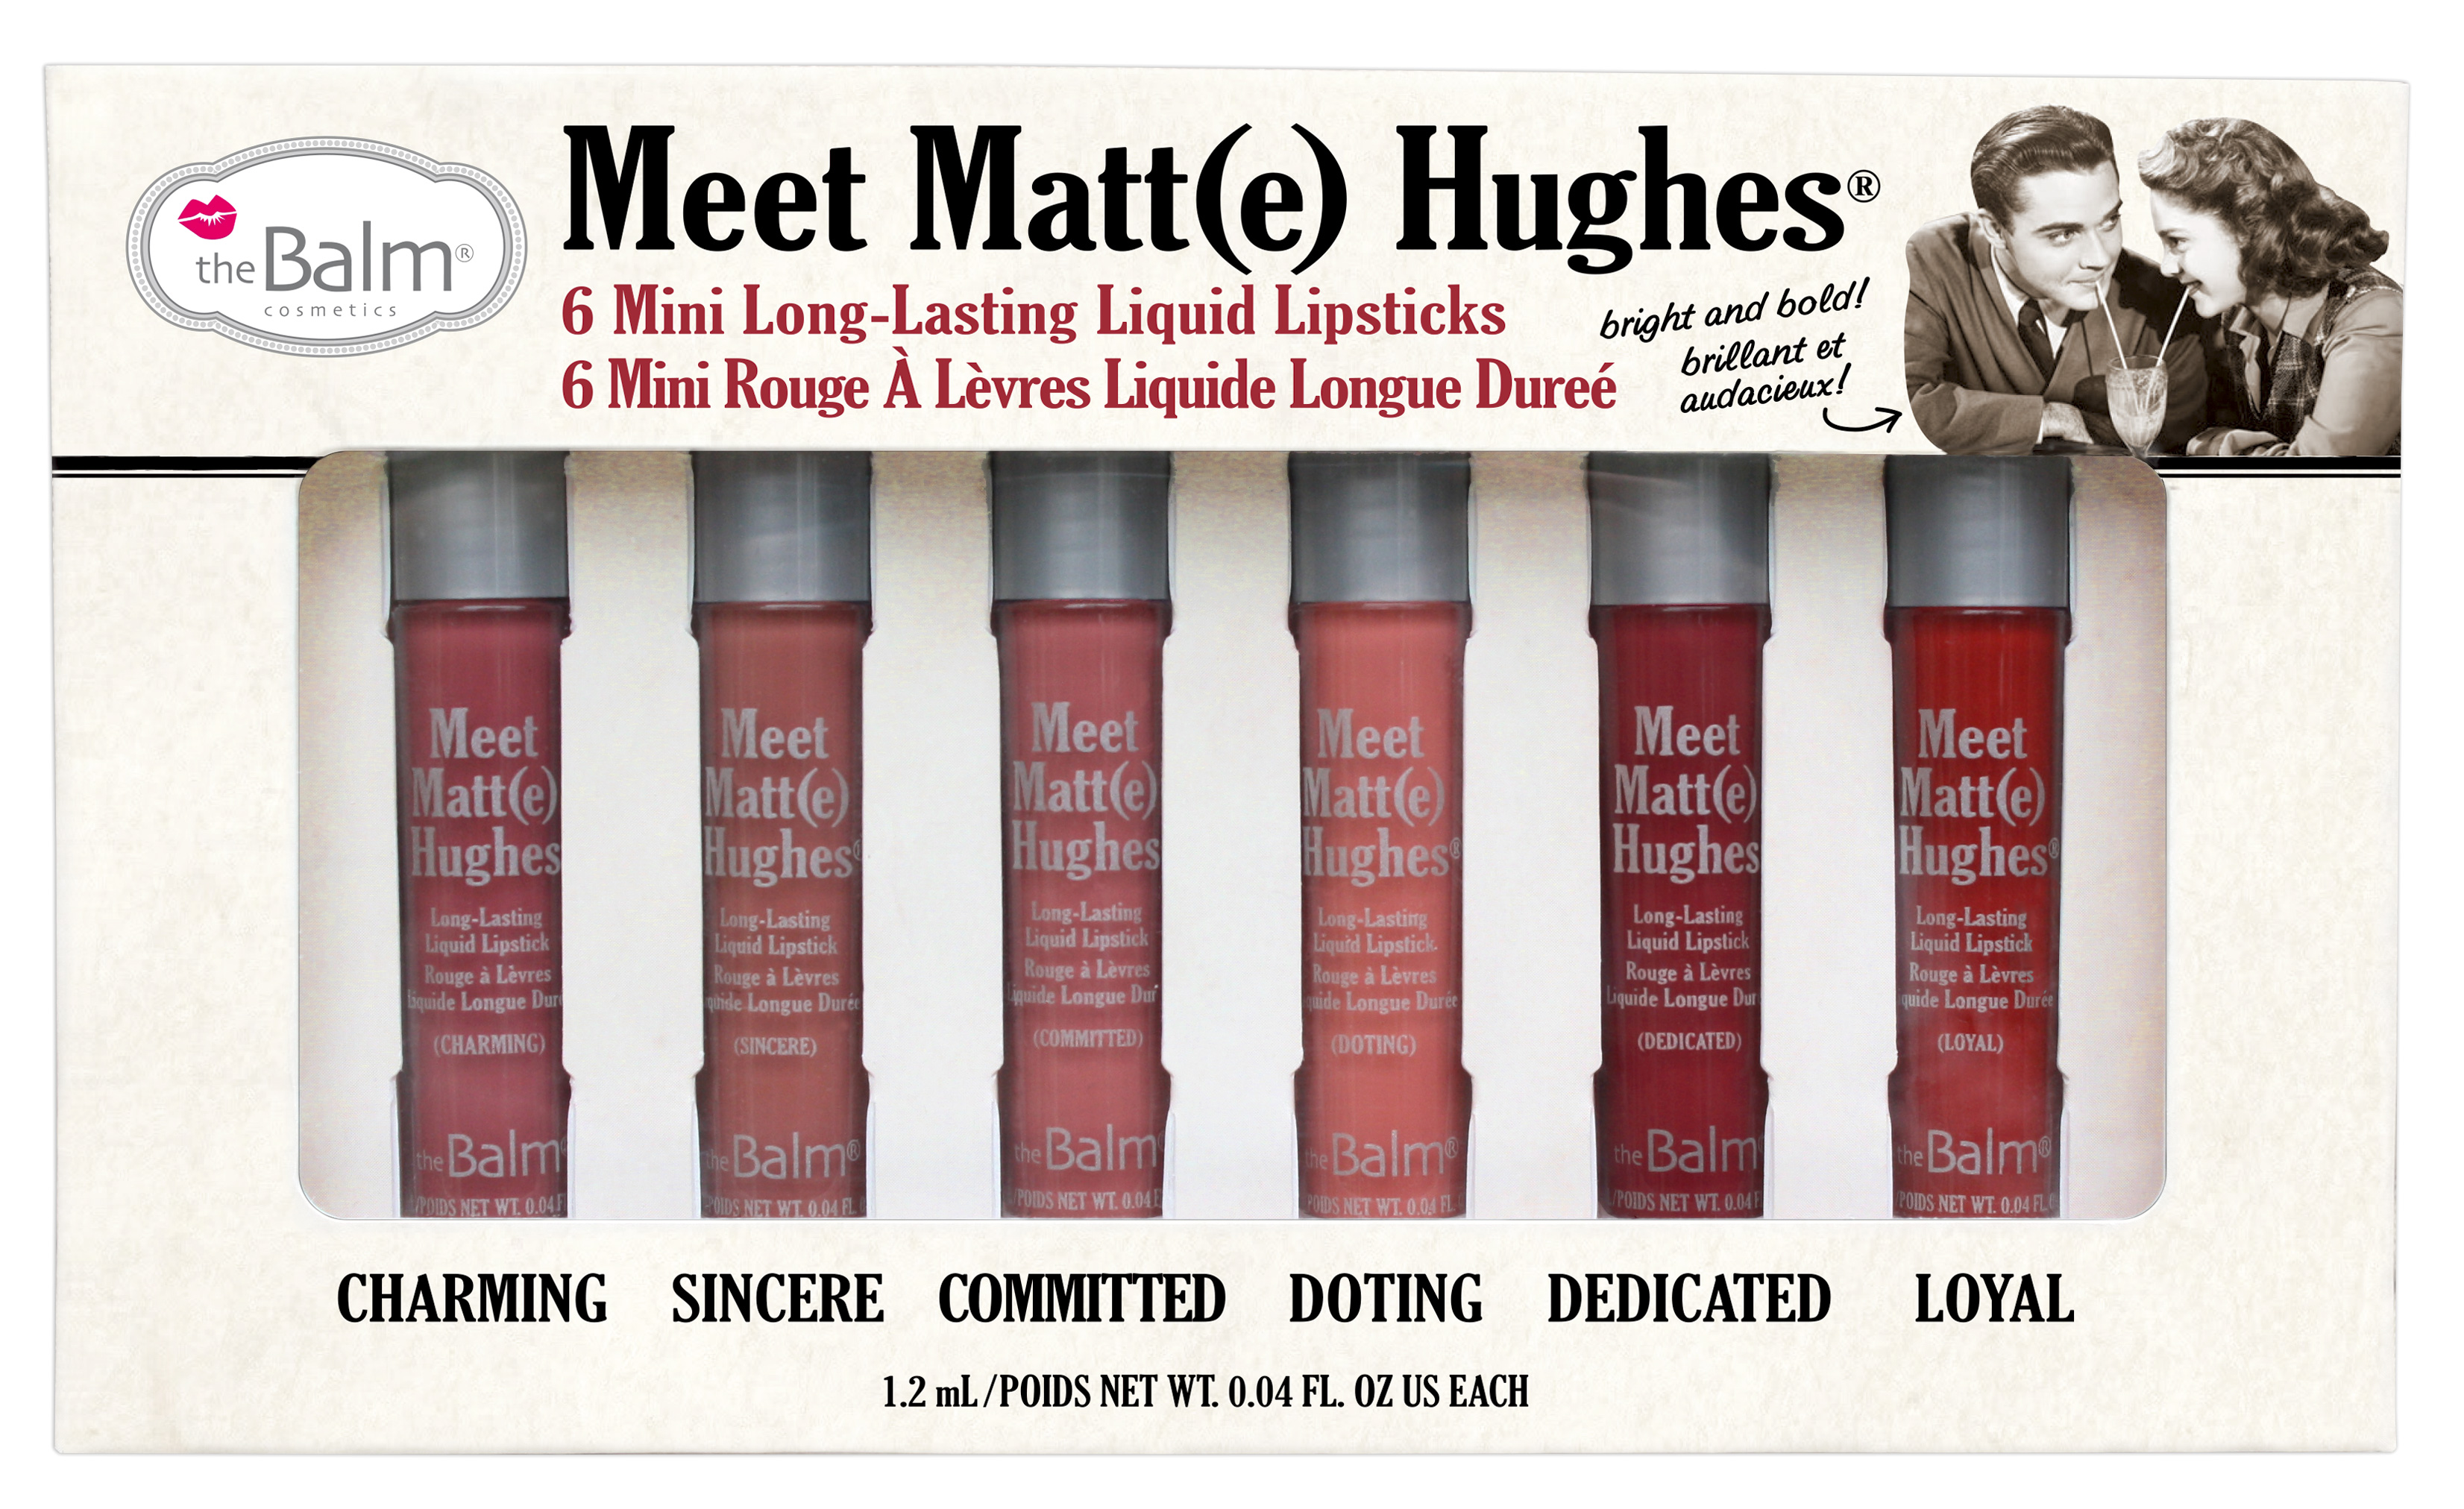 Meet Matte Hughes Vol. 1